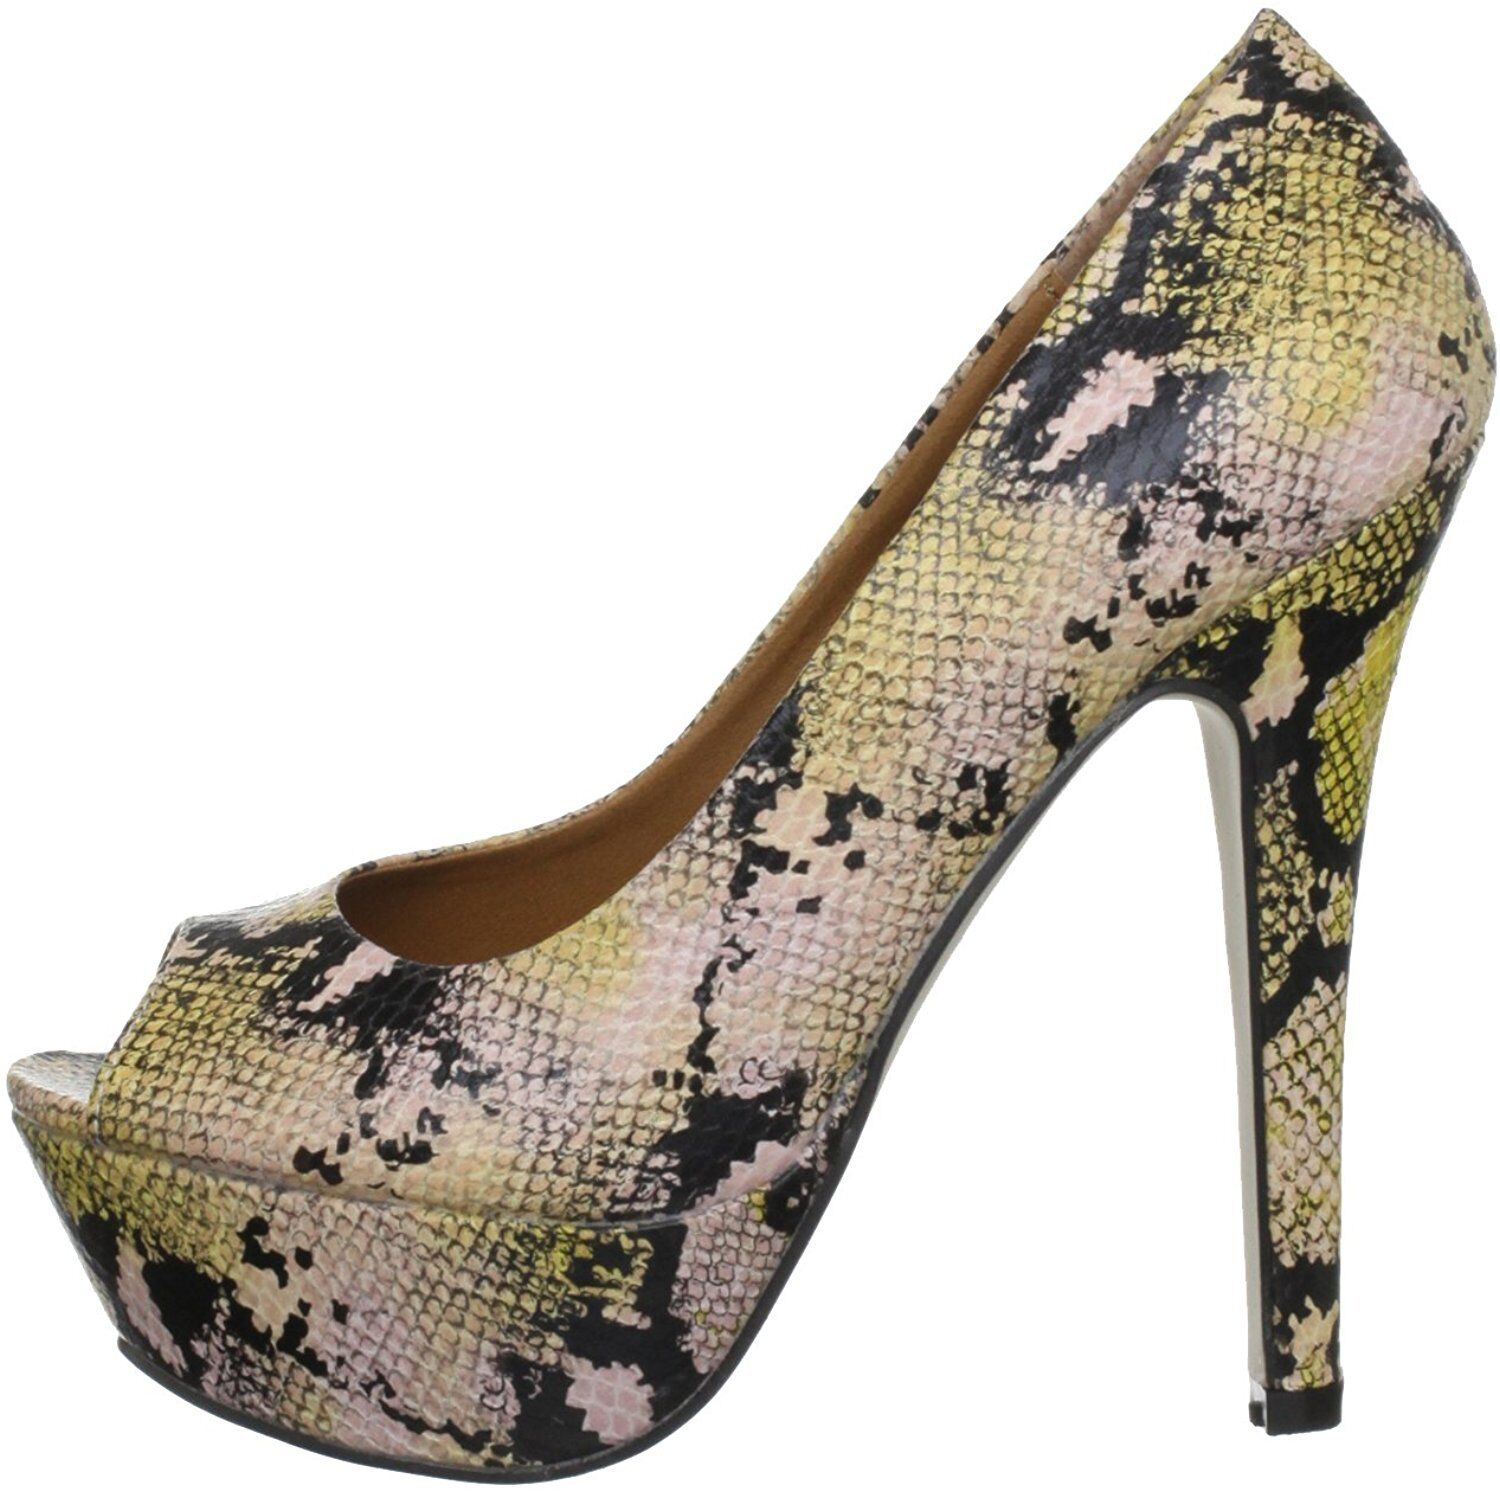 NEW DUNE H O H SIZE 3 4 5 6 7 8 DILLY H BEIGE SNAKE HIGH COURT SHOES